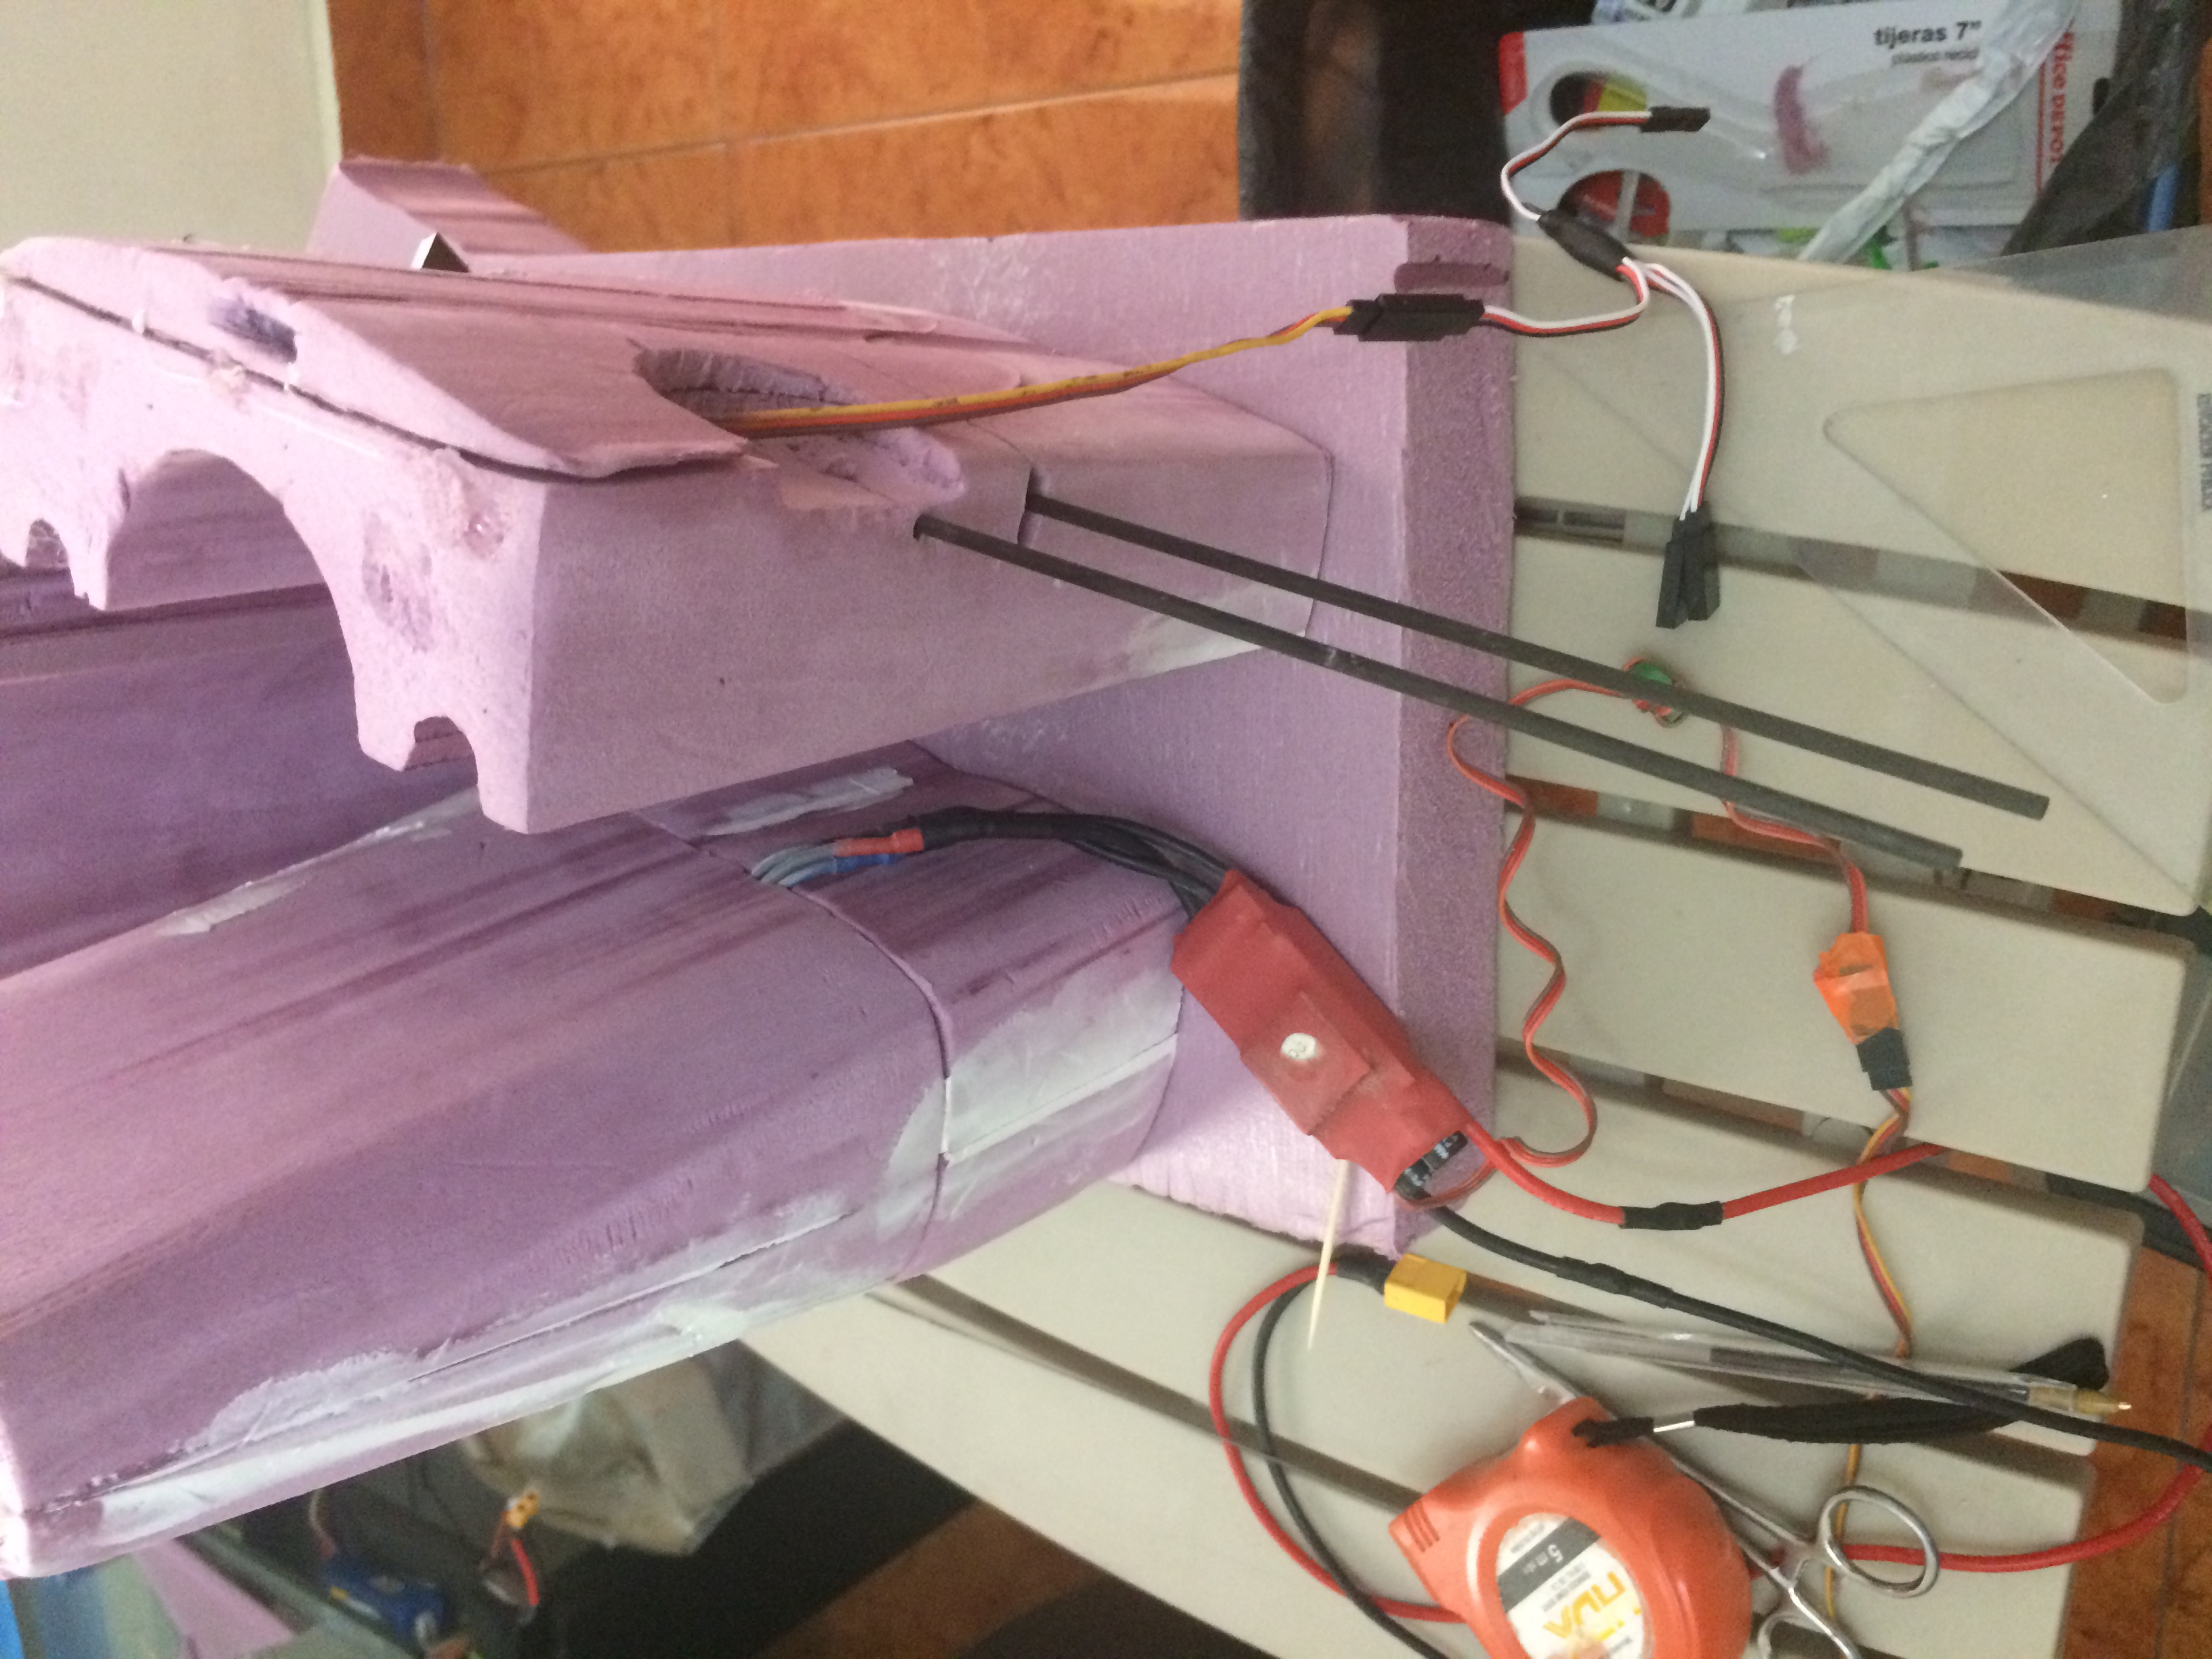 30 68 Eurofighter Typhoon Hot Wire Cut Edf 70 Mm Flite Test What Is Wiring Hopefully I Will Maiden It Soon